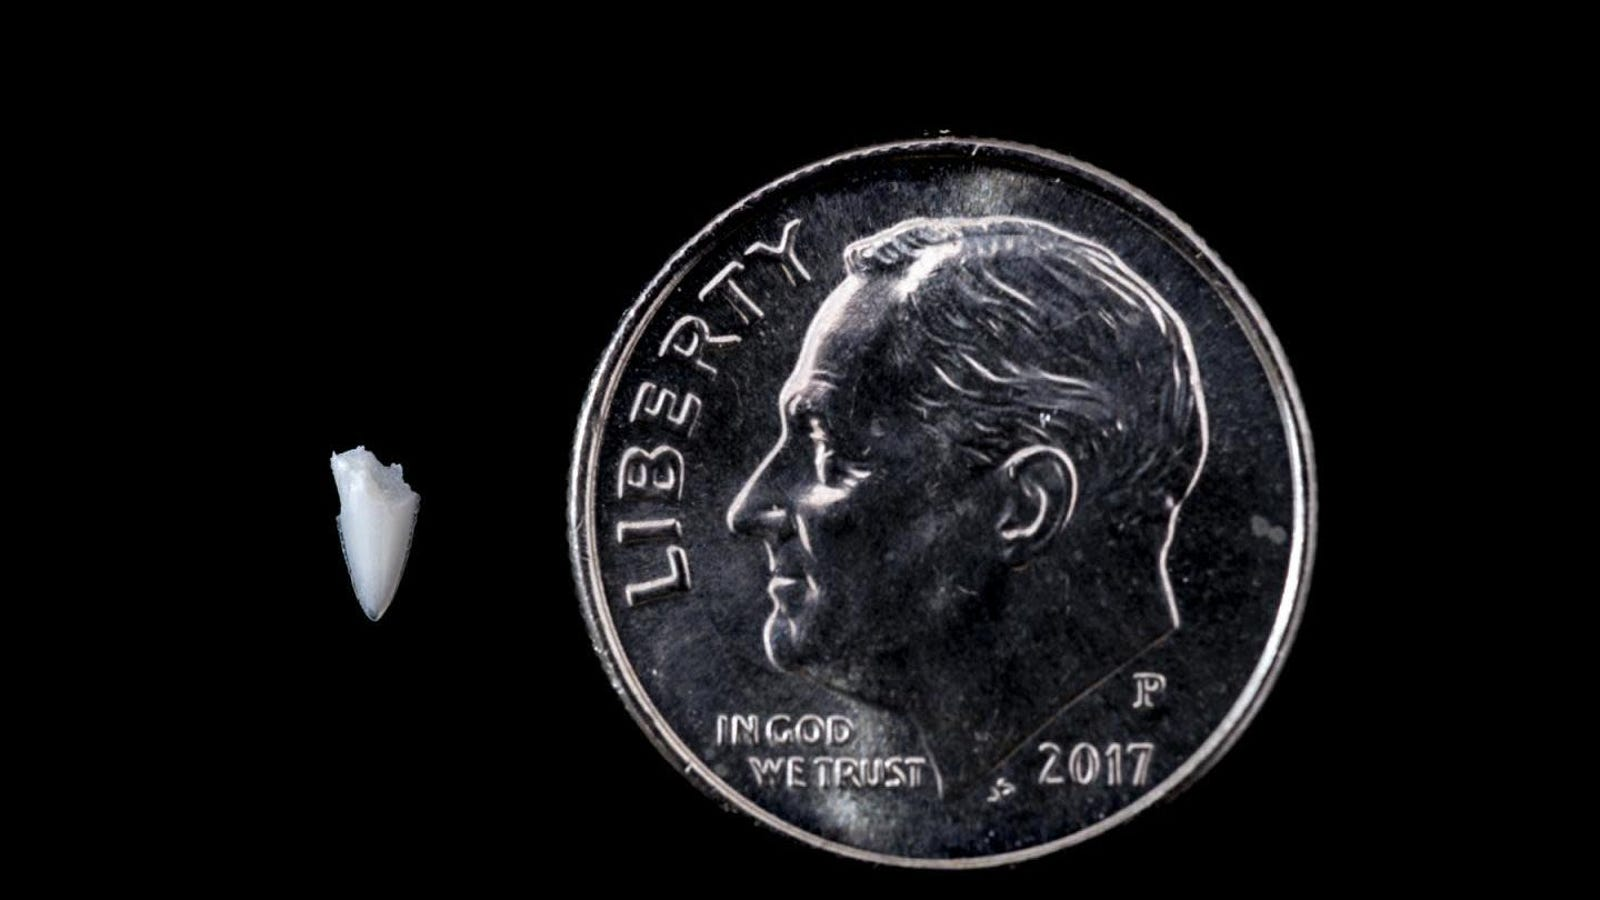 Shark Bite Mystery Solved 25 Years Later Thanks to Tooth Tweezed From Foot